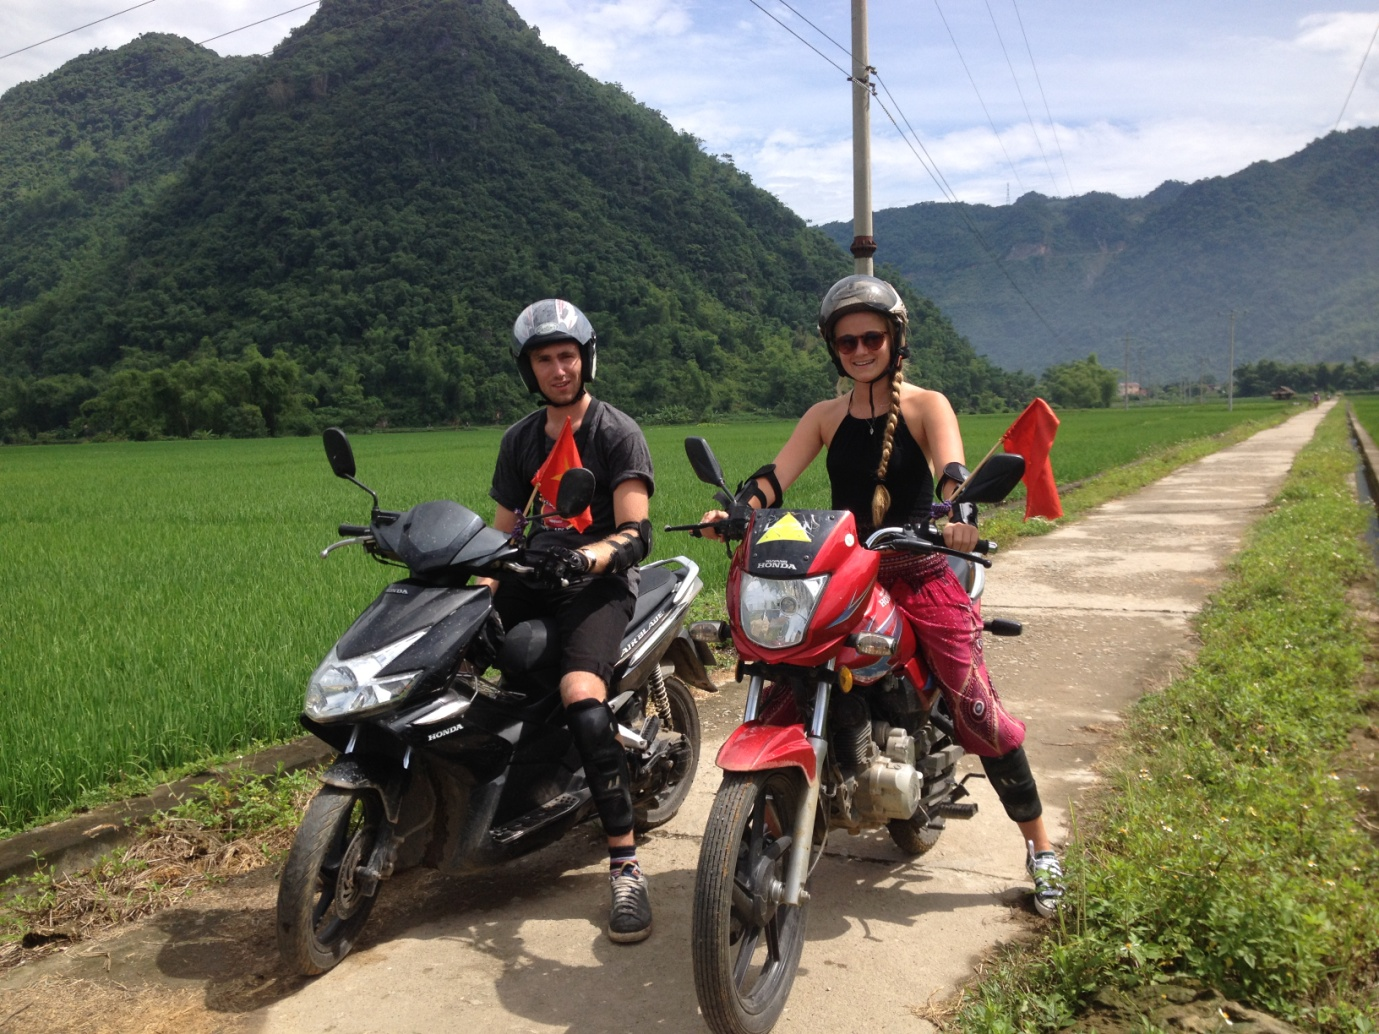 Motorbike-best way on amazing Hanoi-Halong road